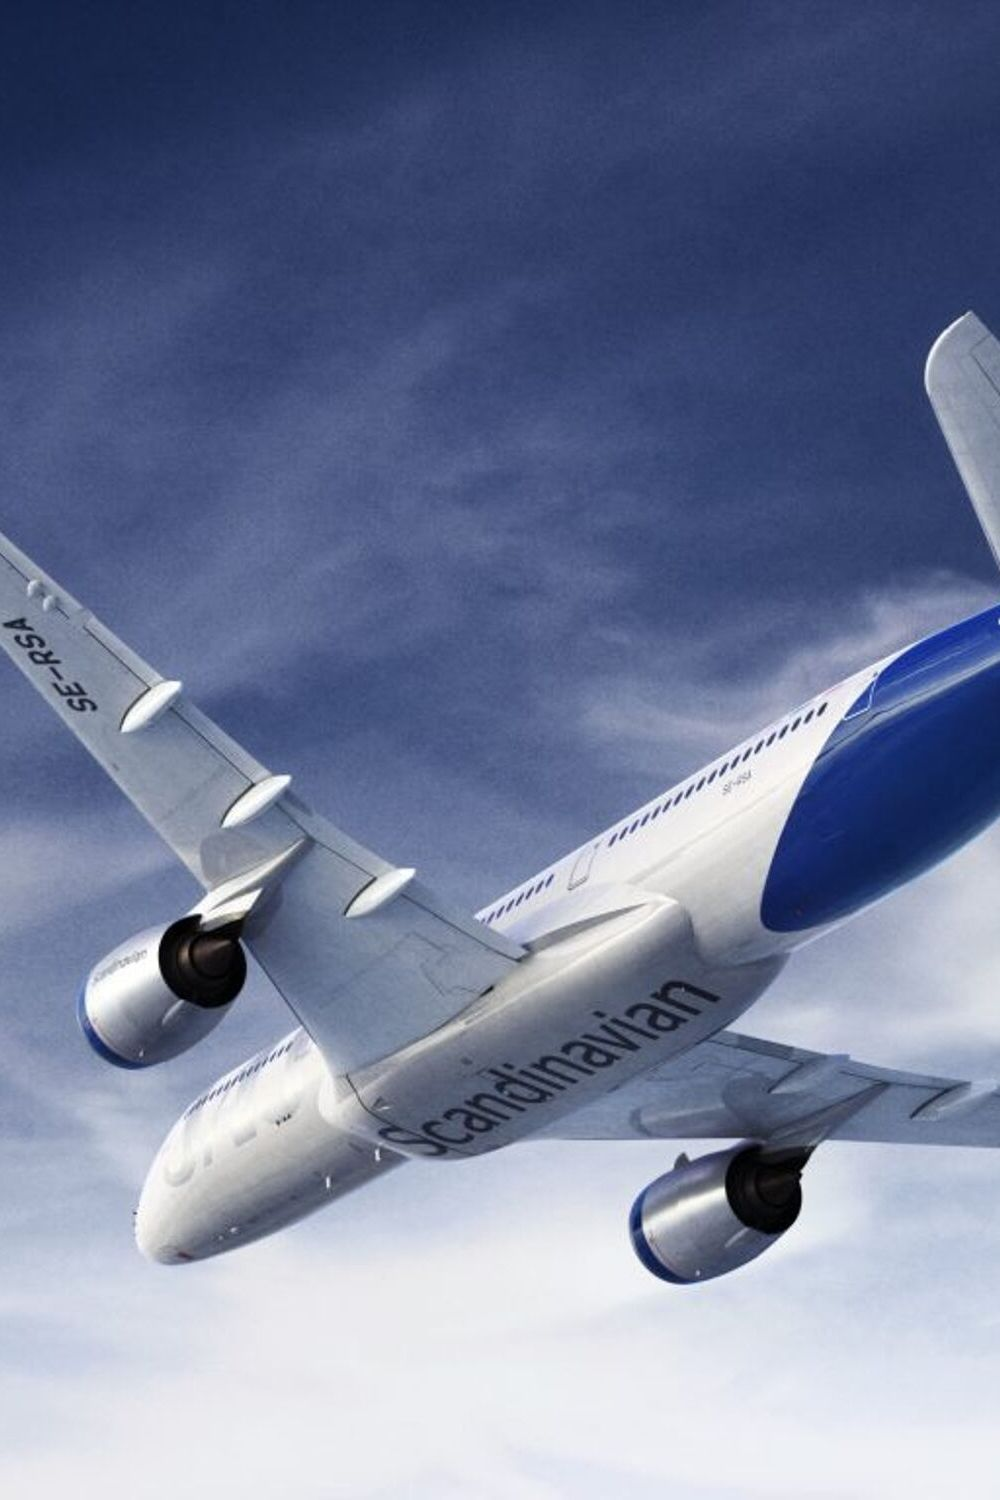 Sas Scandinavian Airlines New Livery Unveiled Captainjetson In 2020 Sas Airlines Sas Scandinavian